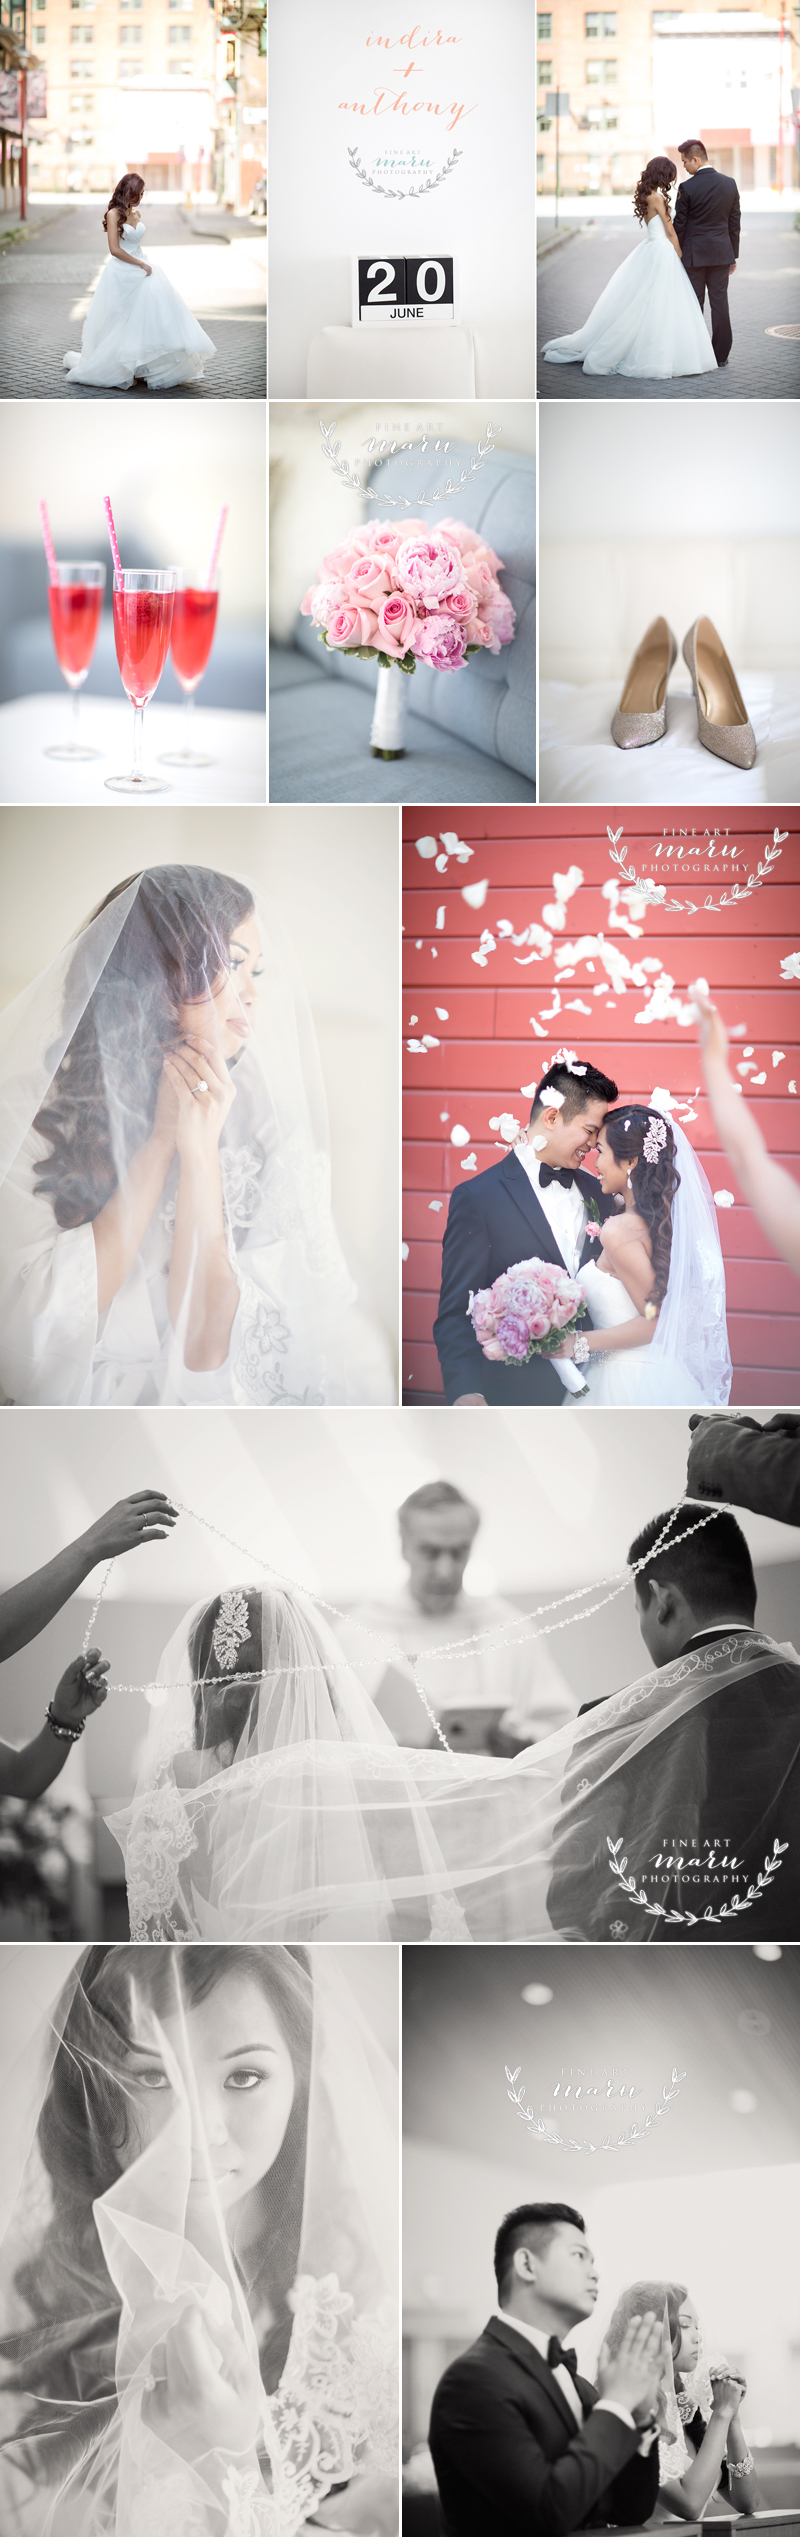 wedding photography | vancouver photographer |fine art wedding photography | maruphoto.ca